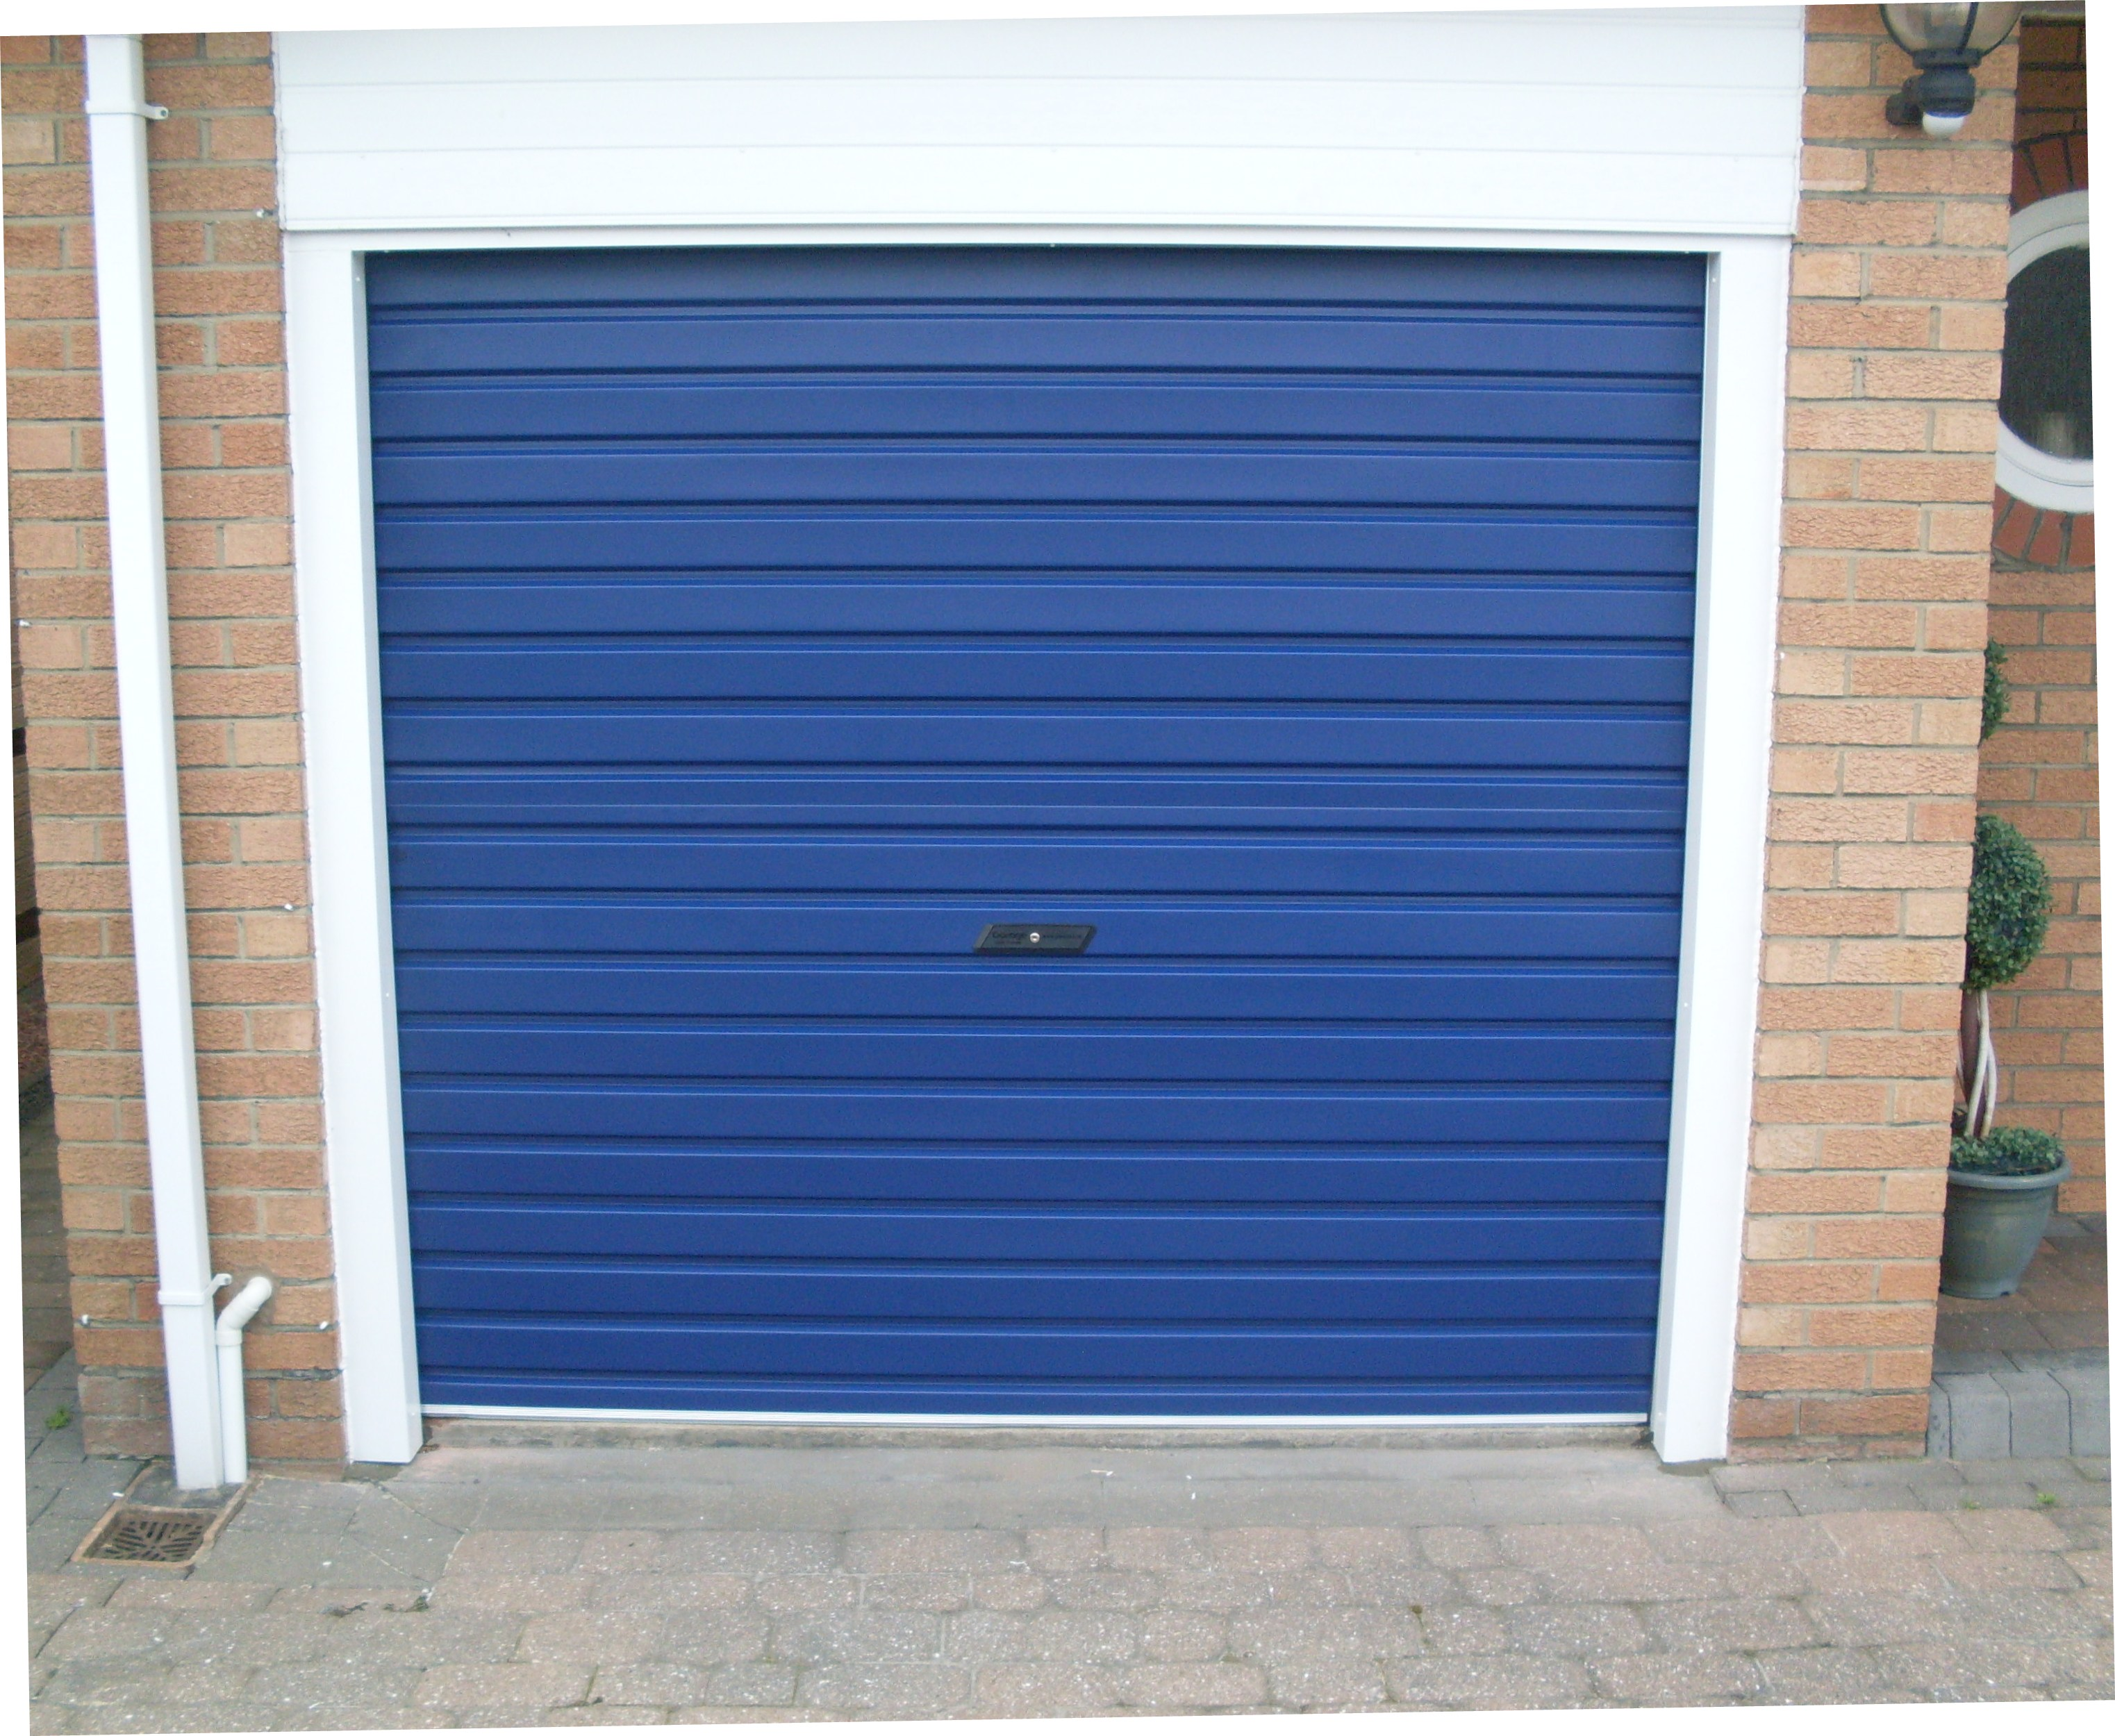 2500 #294886 Garage Doors Newcastle Newcastle Garage Doors Nortech Garage Doors  wallpaper Grarage Doors 38153045